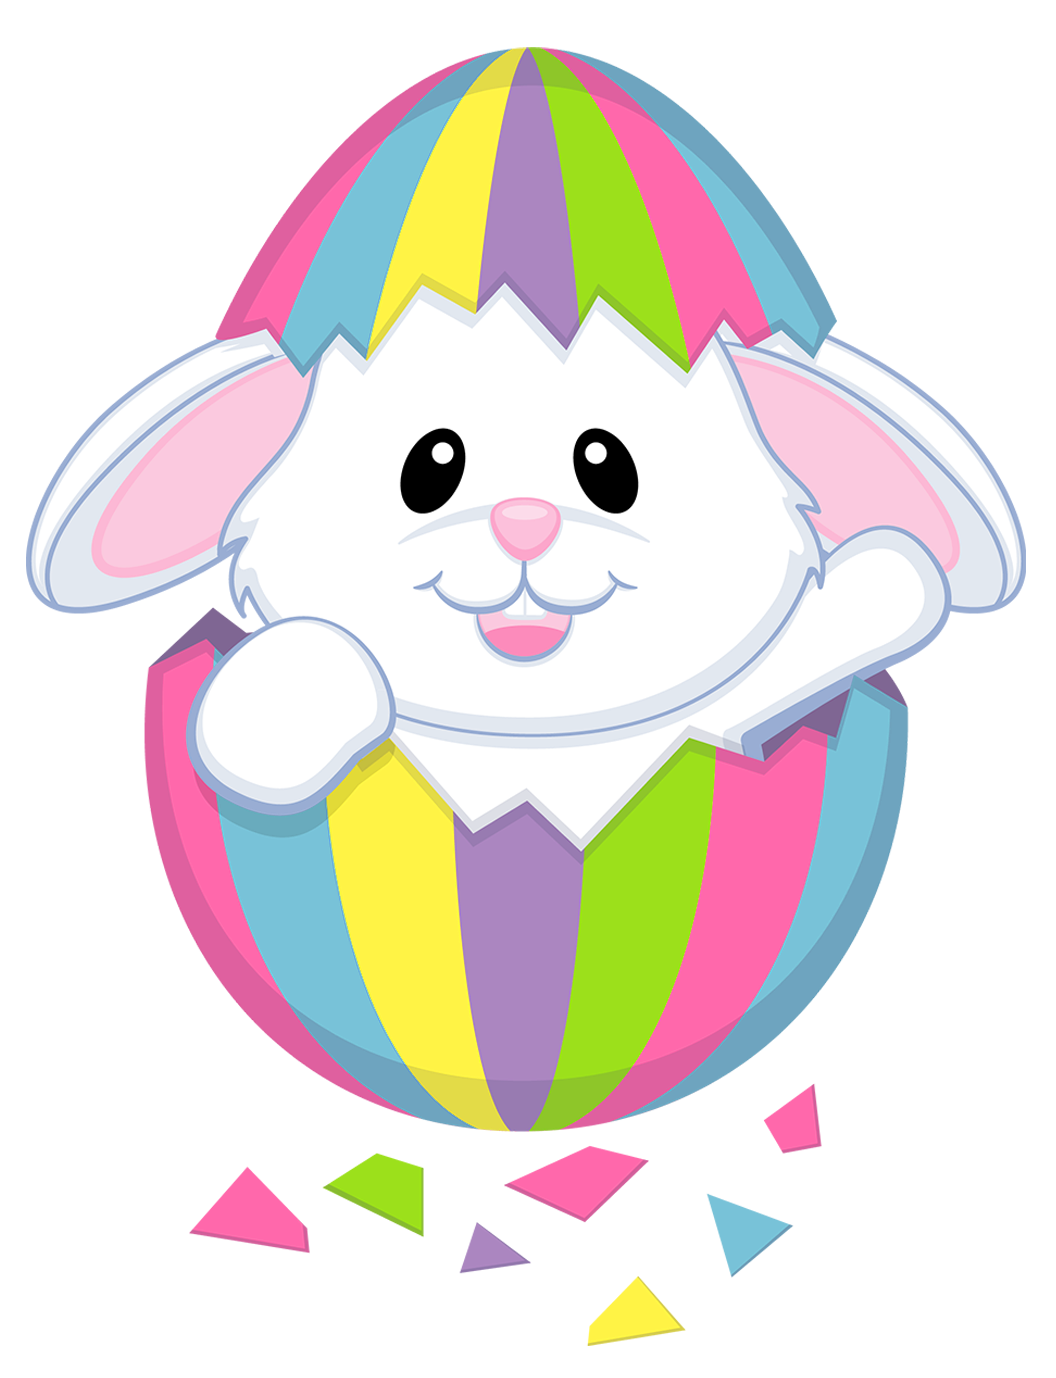 easter bunny clipart best easter eggs pinterest easter bunny rh pinterest com clip art easter bunny faces clipart easter bunny free